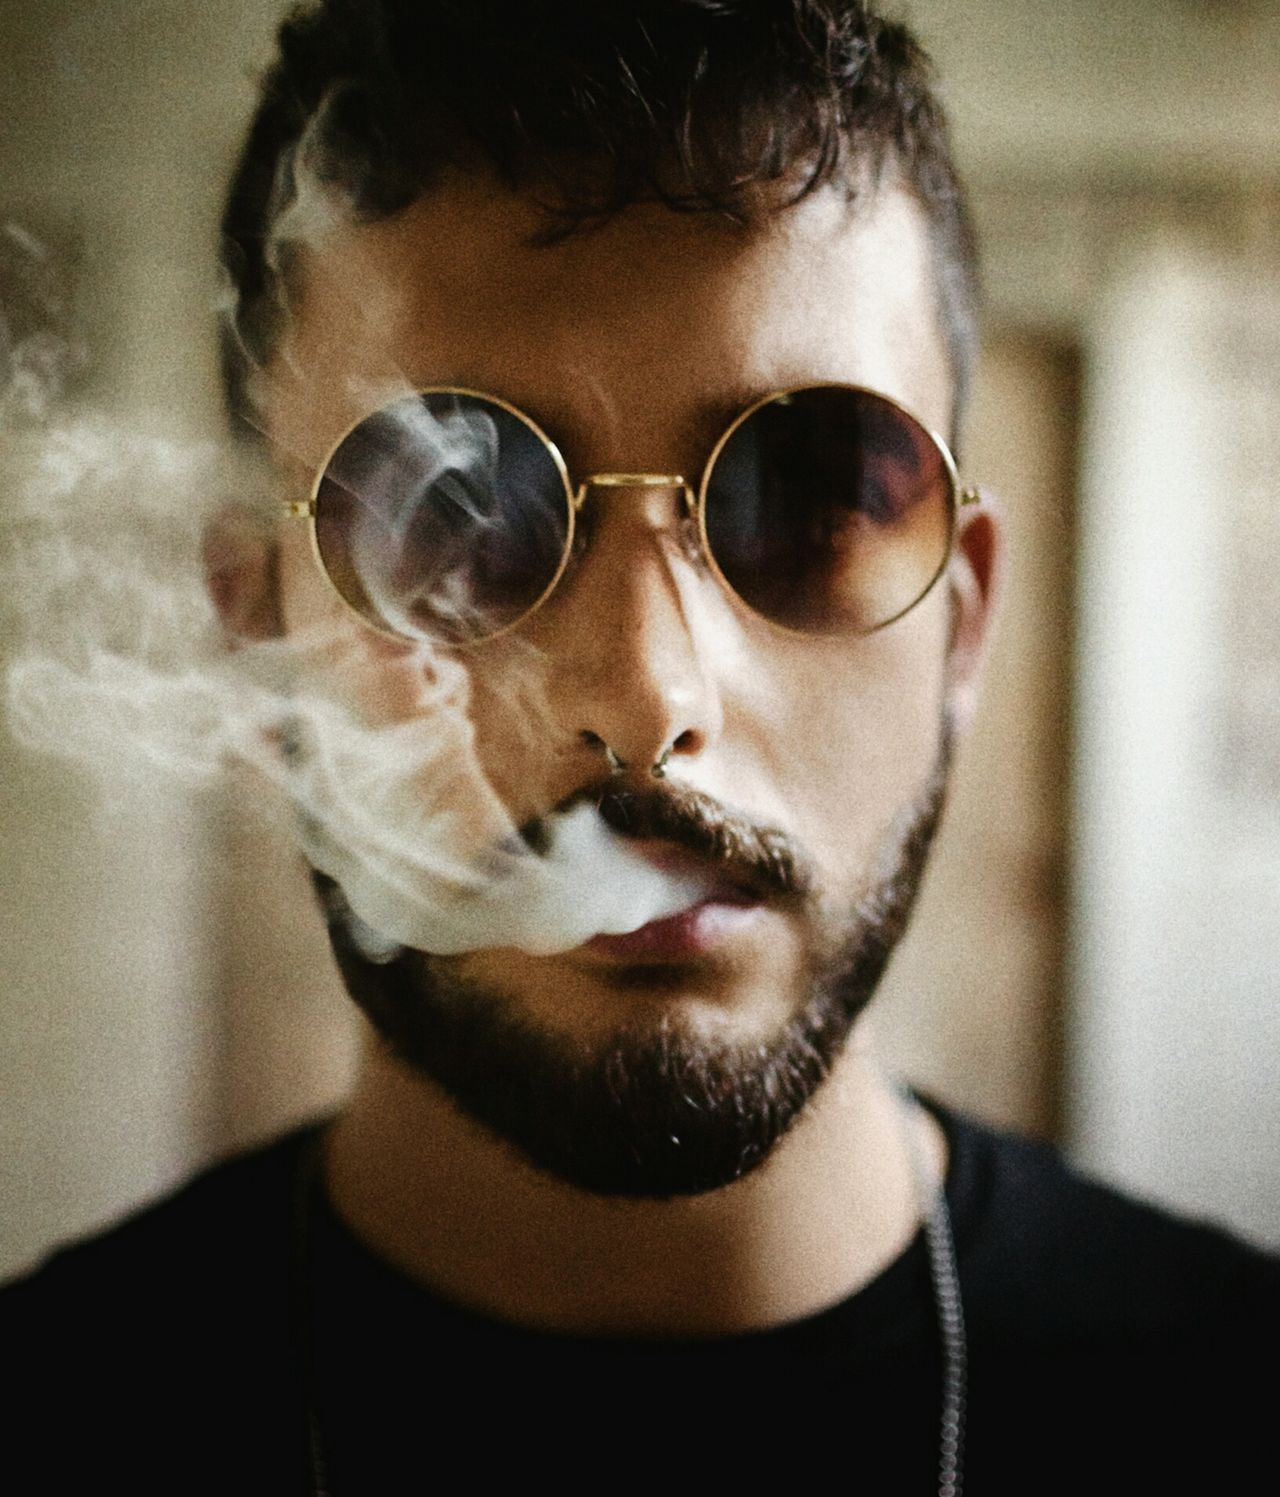 Close-up portrait of young man smoking